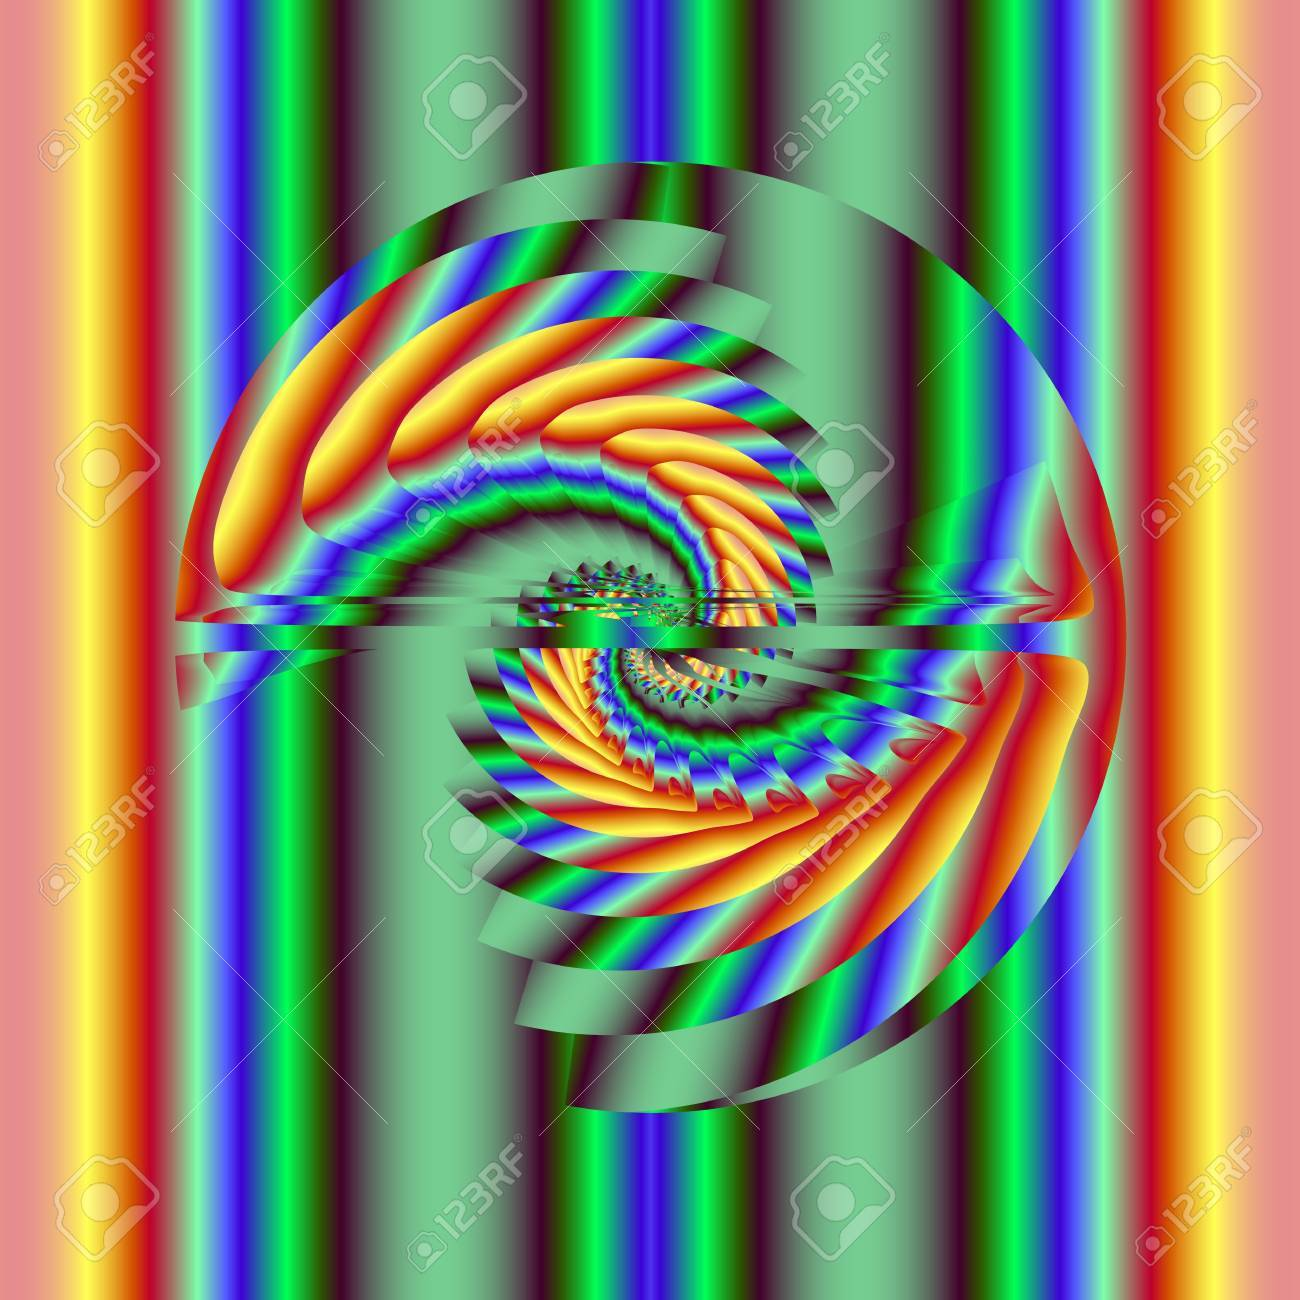 Abstract rainbow helix. Computer generated fractal image Stock Photo - 7247078